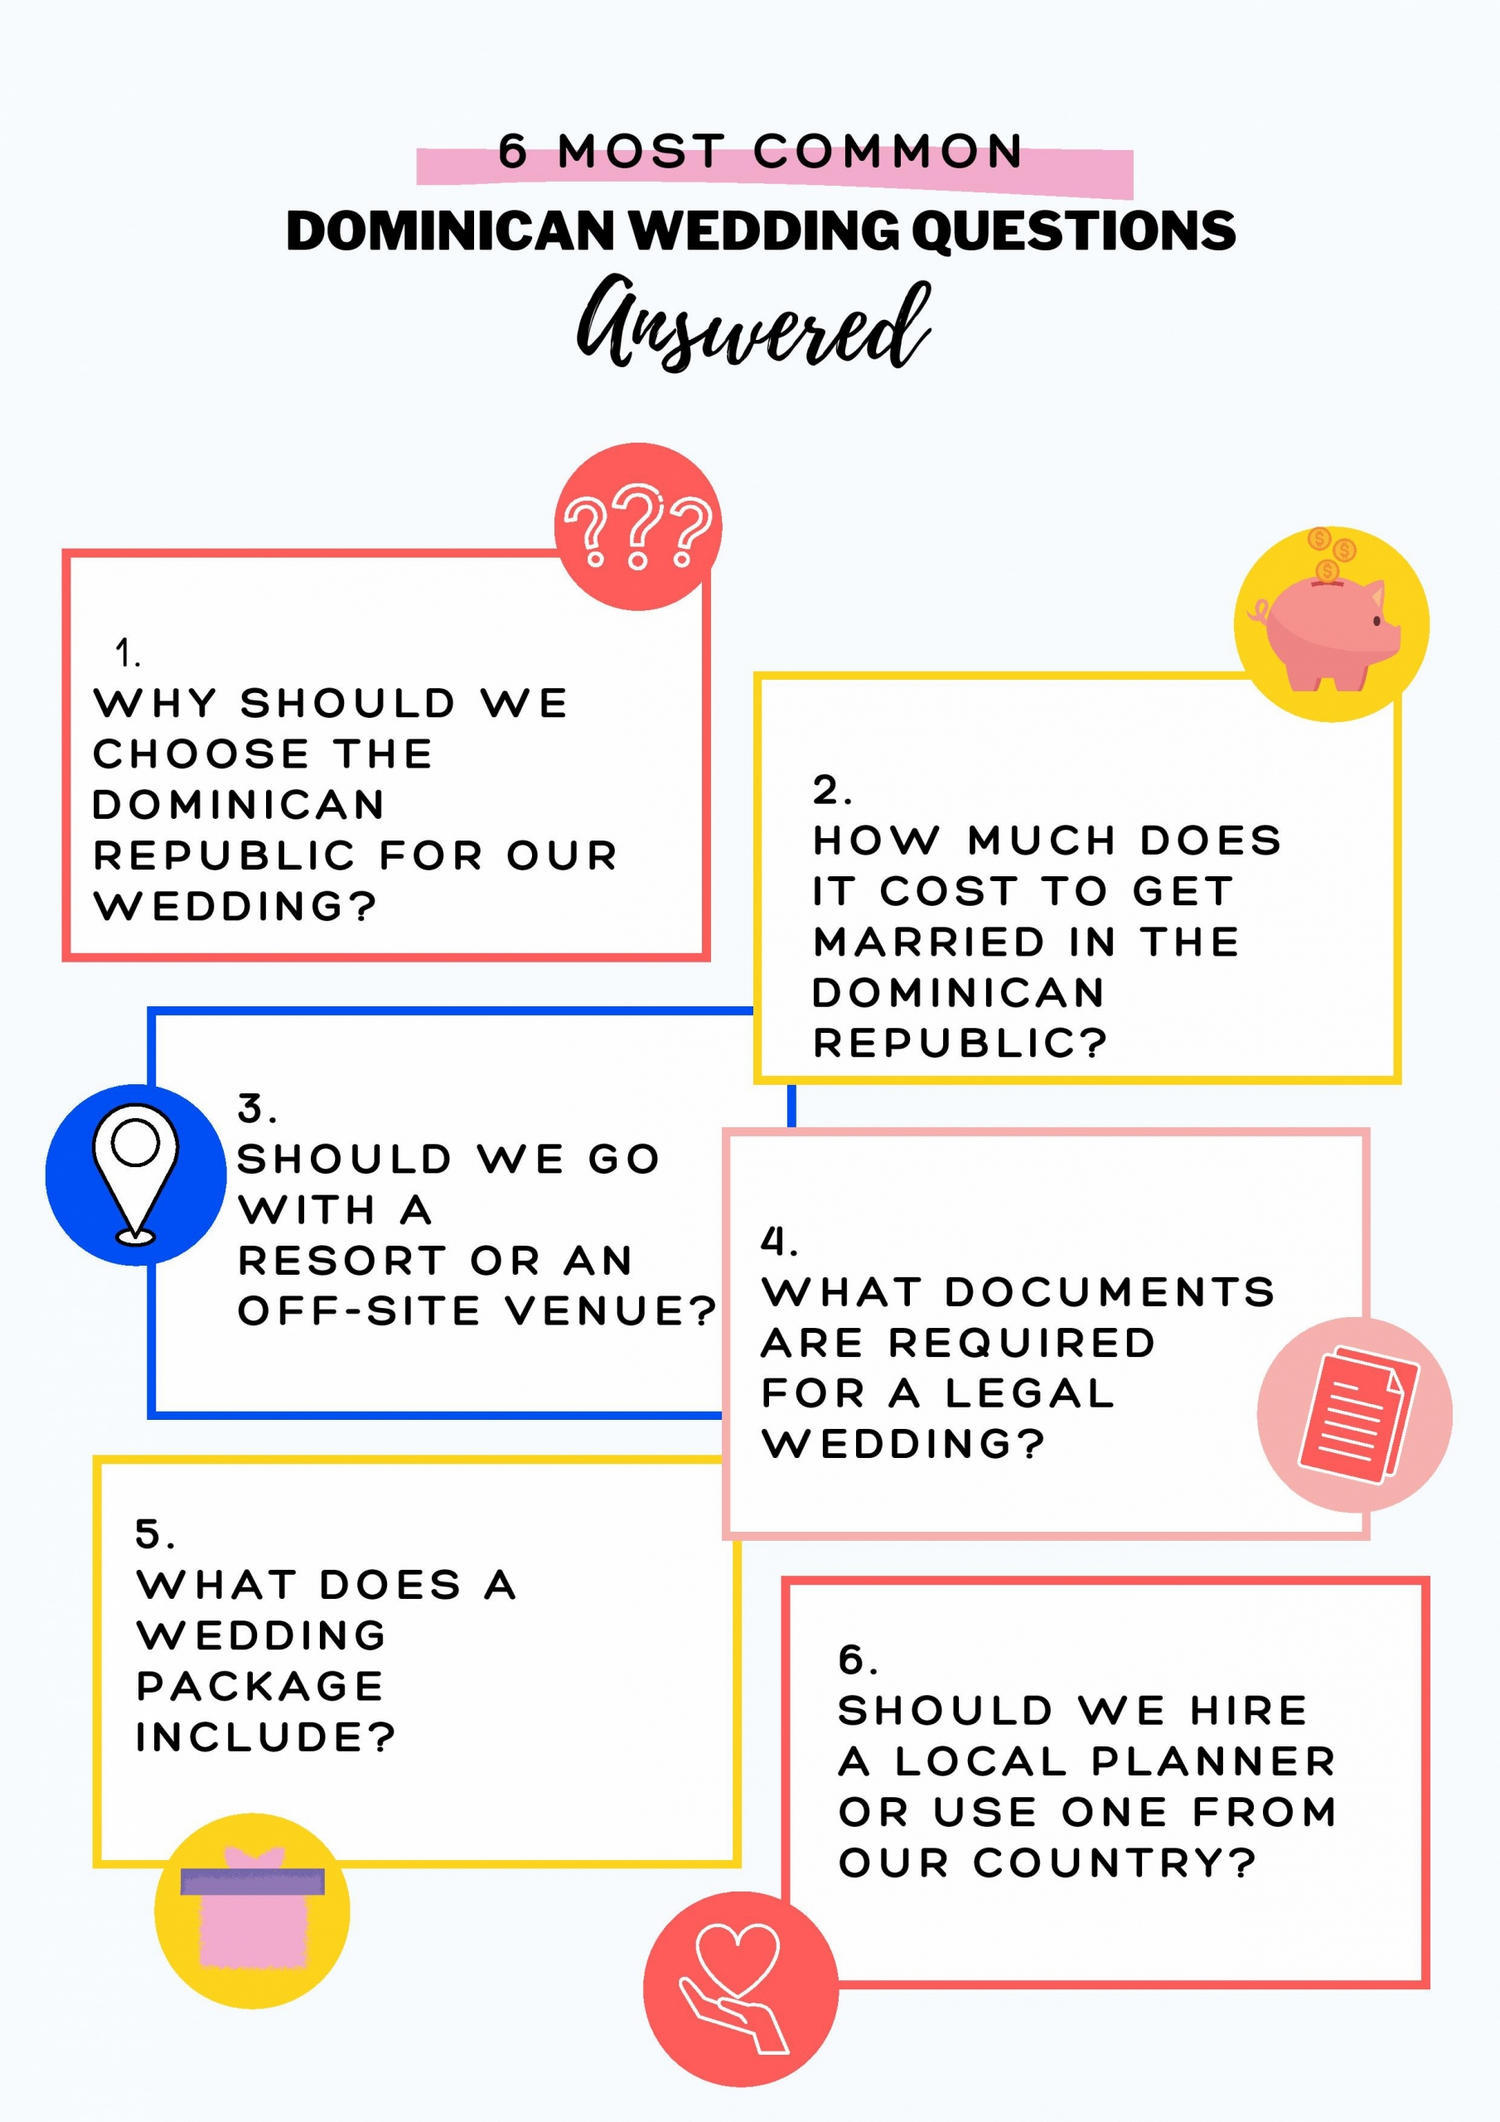 Dominican Wedding Questions Answered by DIDEA Punta Cana